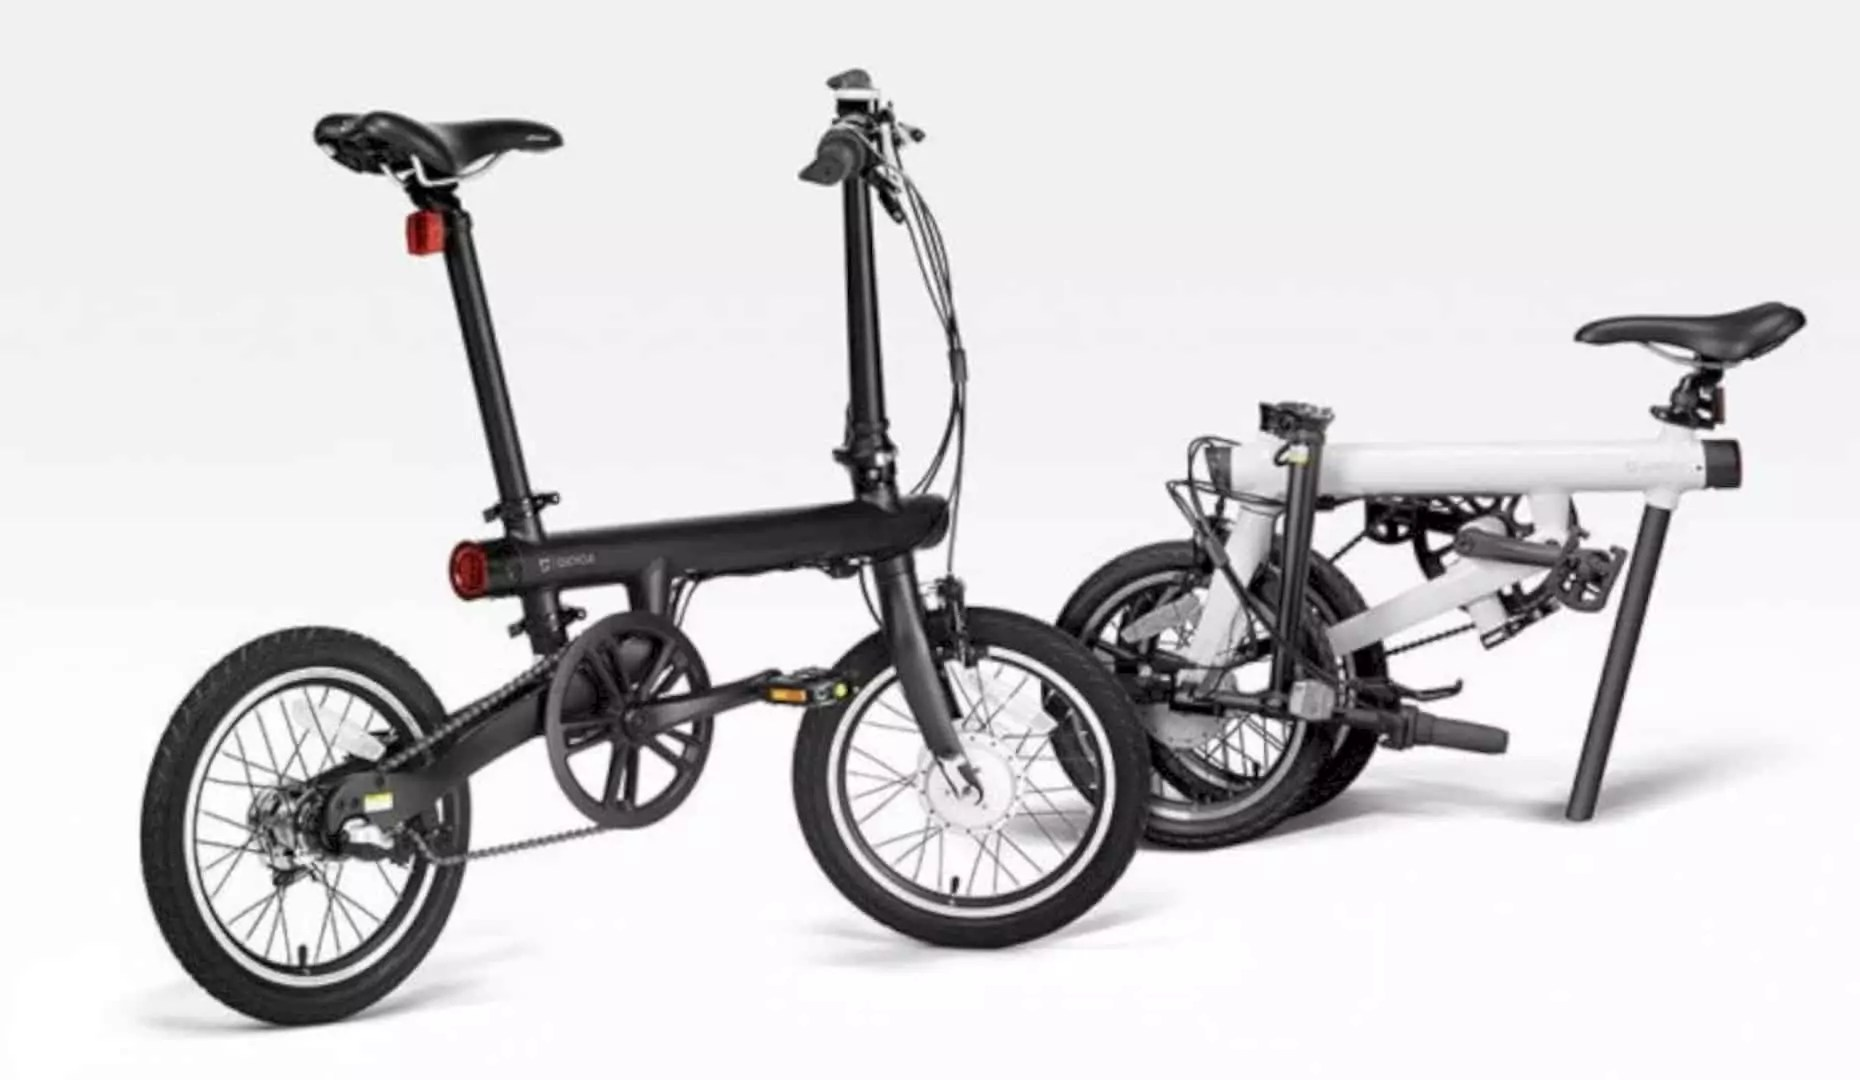 Xiaomi QiCYCLE: The Powerful and Affordable Bicycle